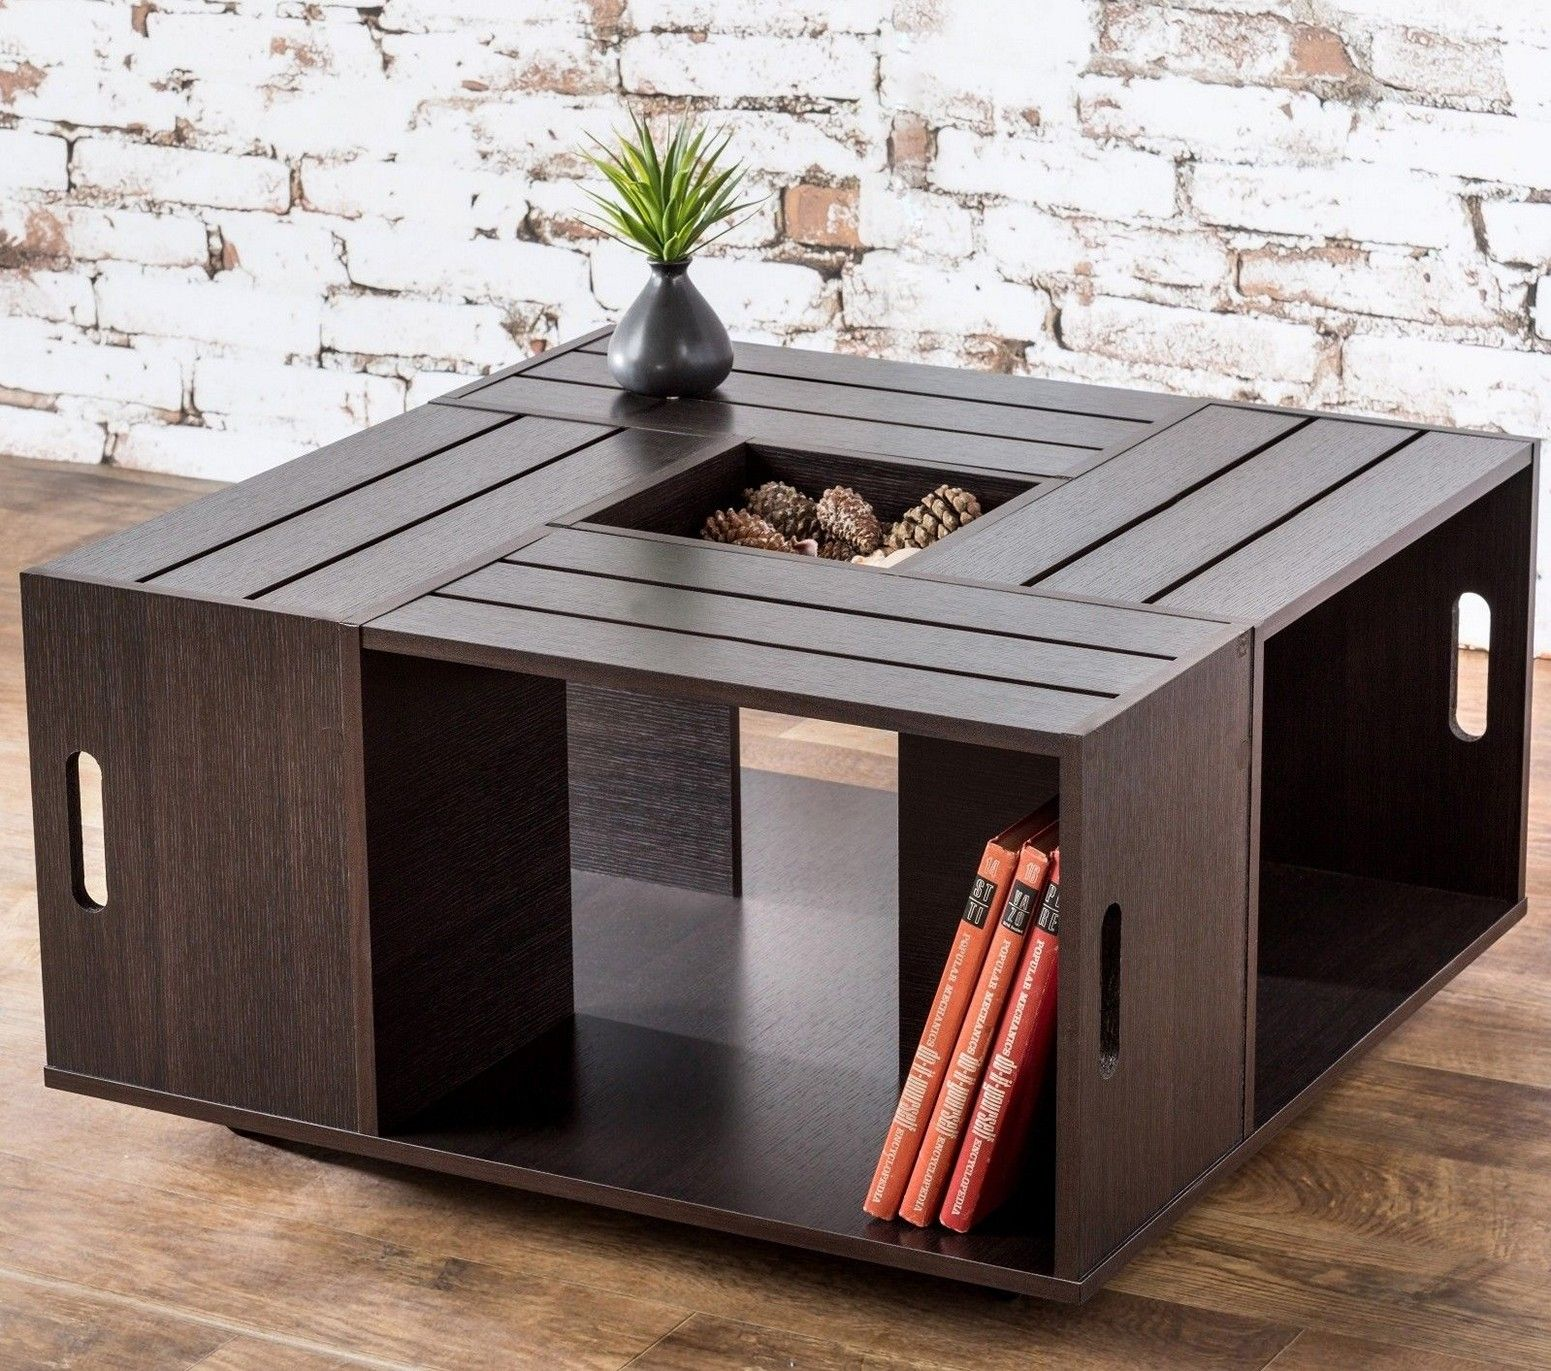 Wine crate coffee table dimensions rascalartsnyc wine crate coffee table dimensions ideas diy refurbish geotapseo Choice Image